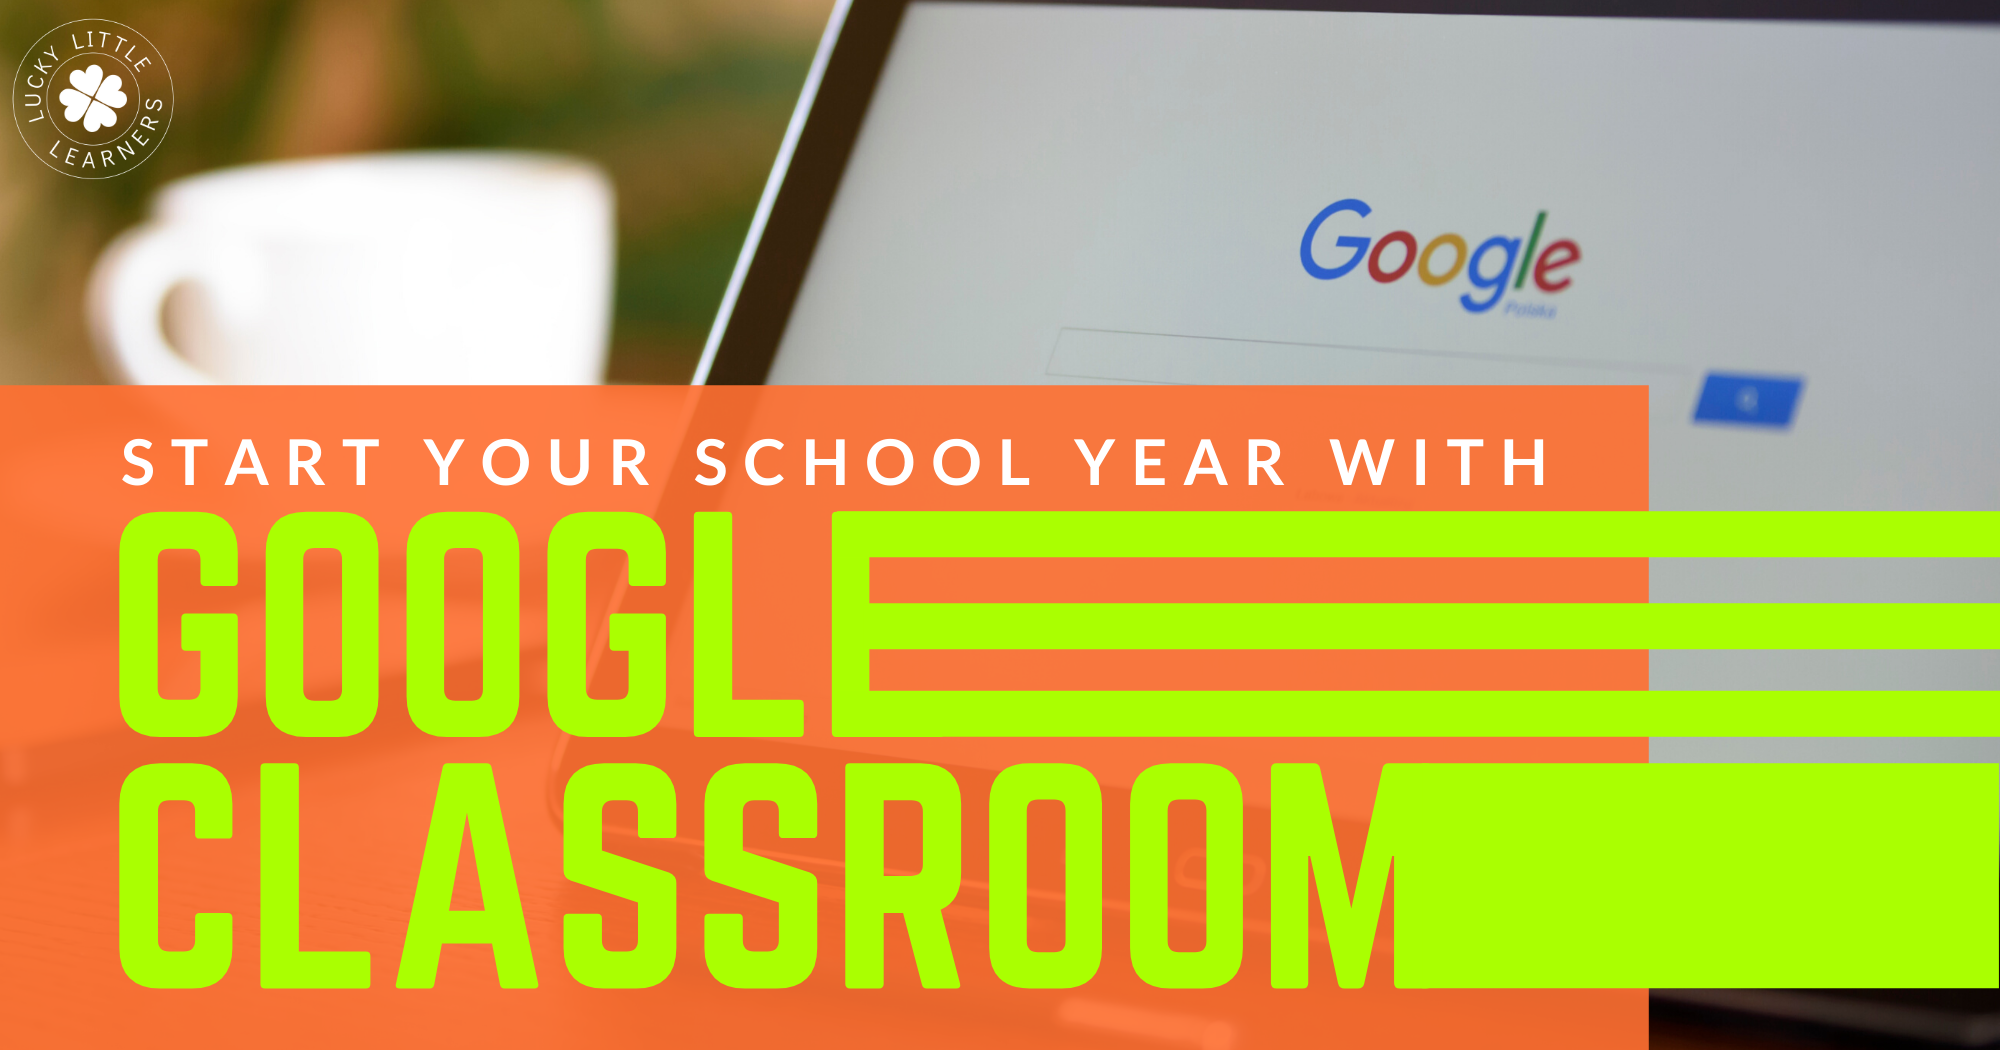 Start Your School Year With Google Classroom